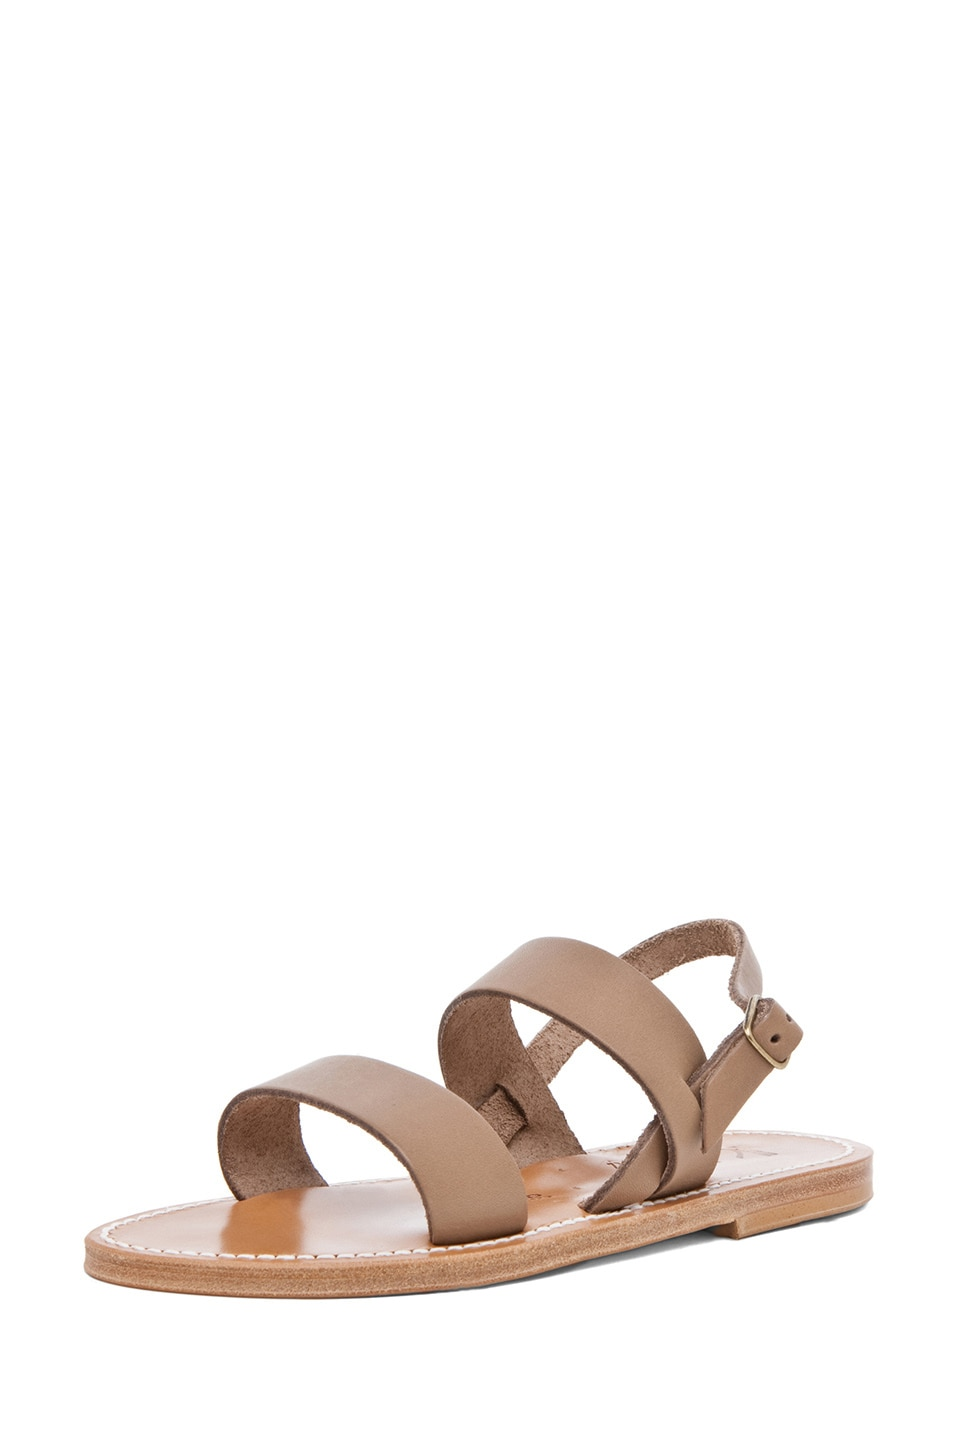 Image 2 of K Jacques Barigoule Thick Strap Sandal in Taupe